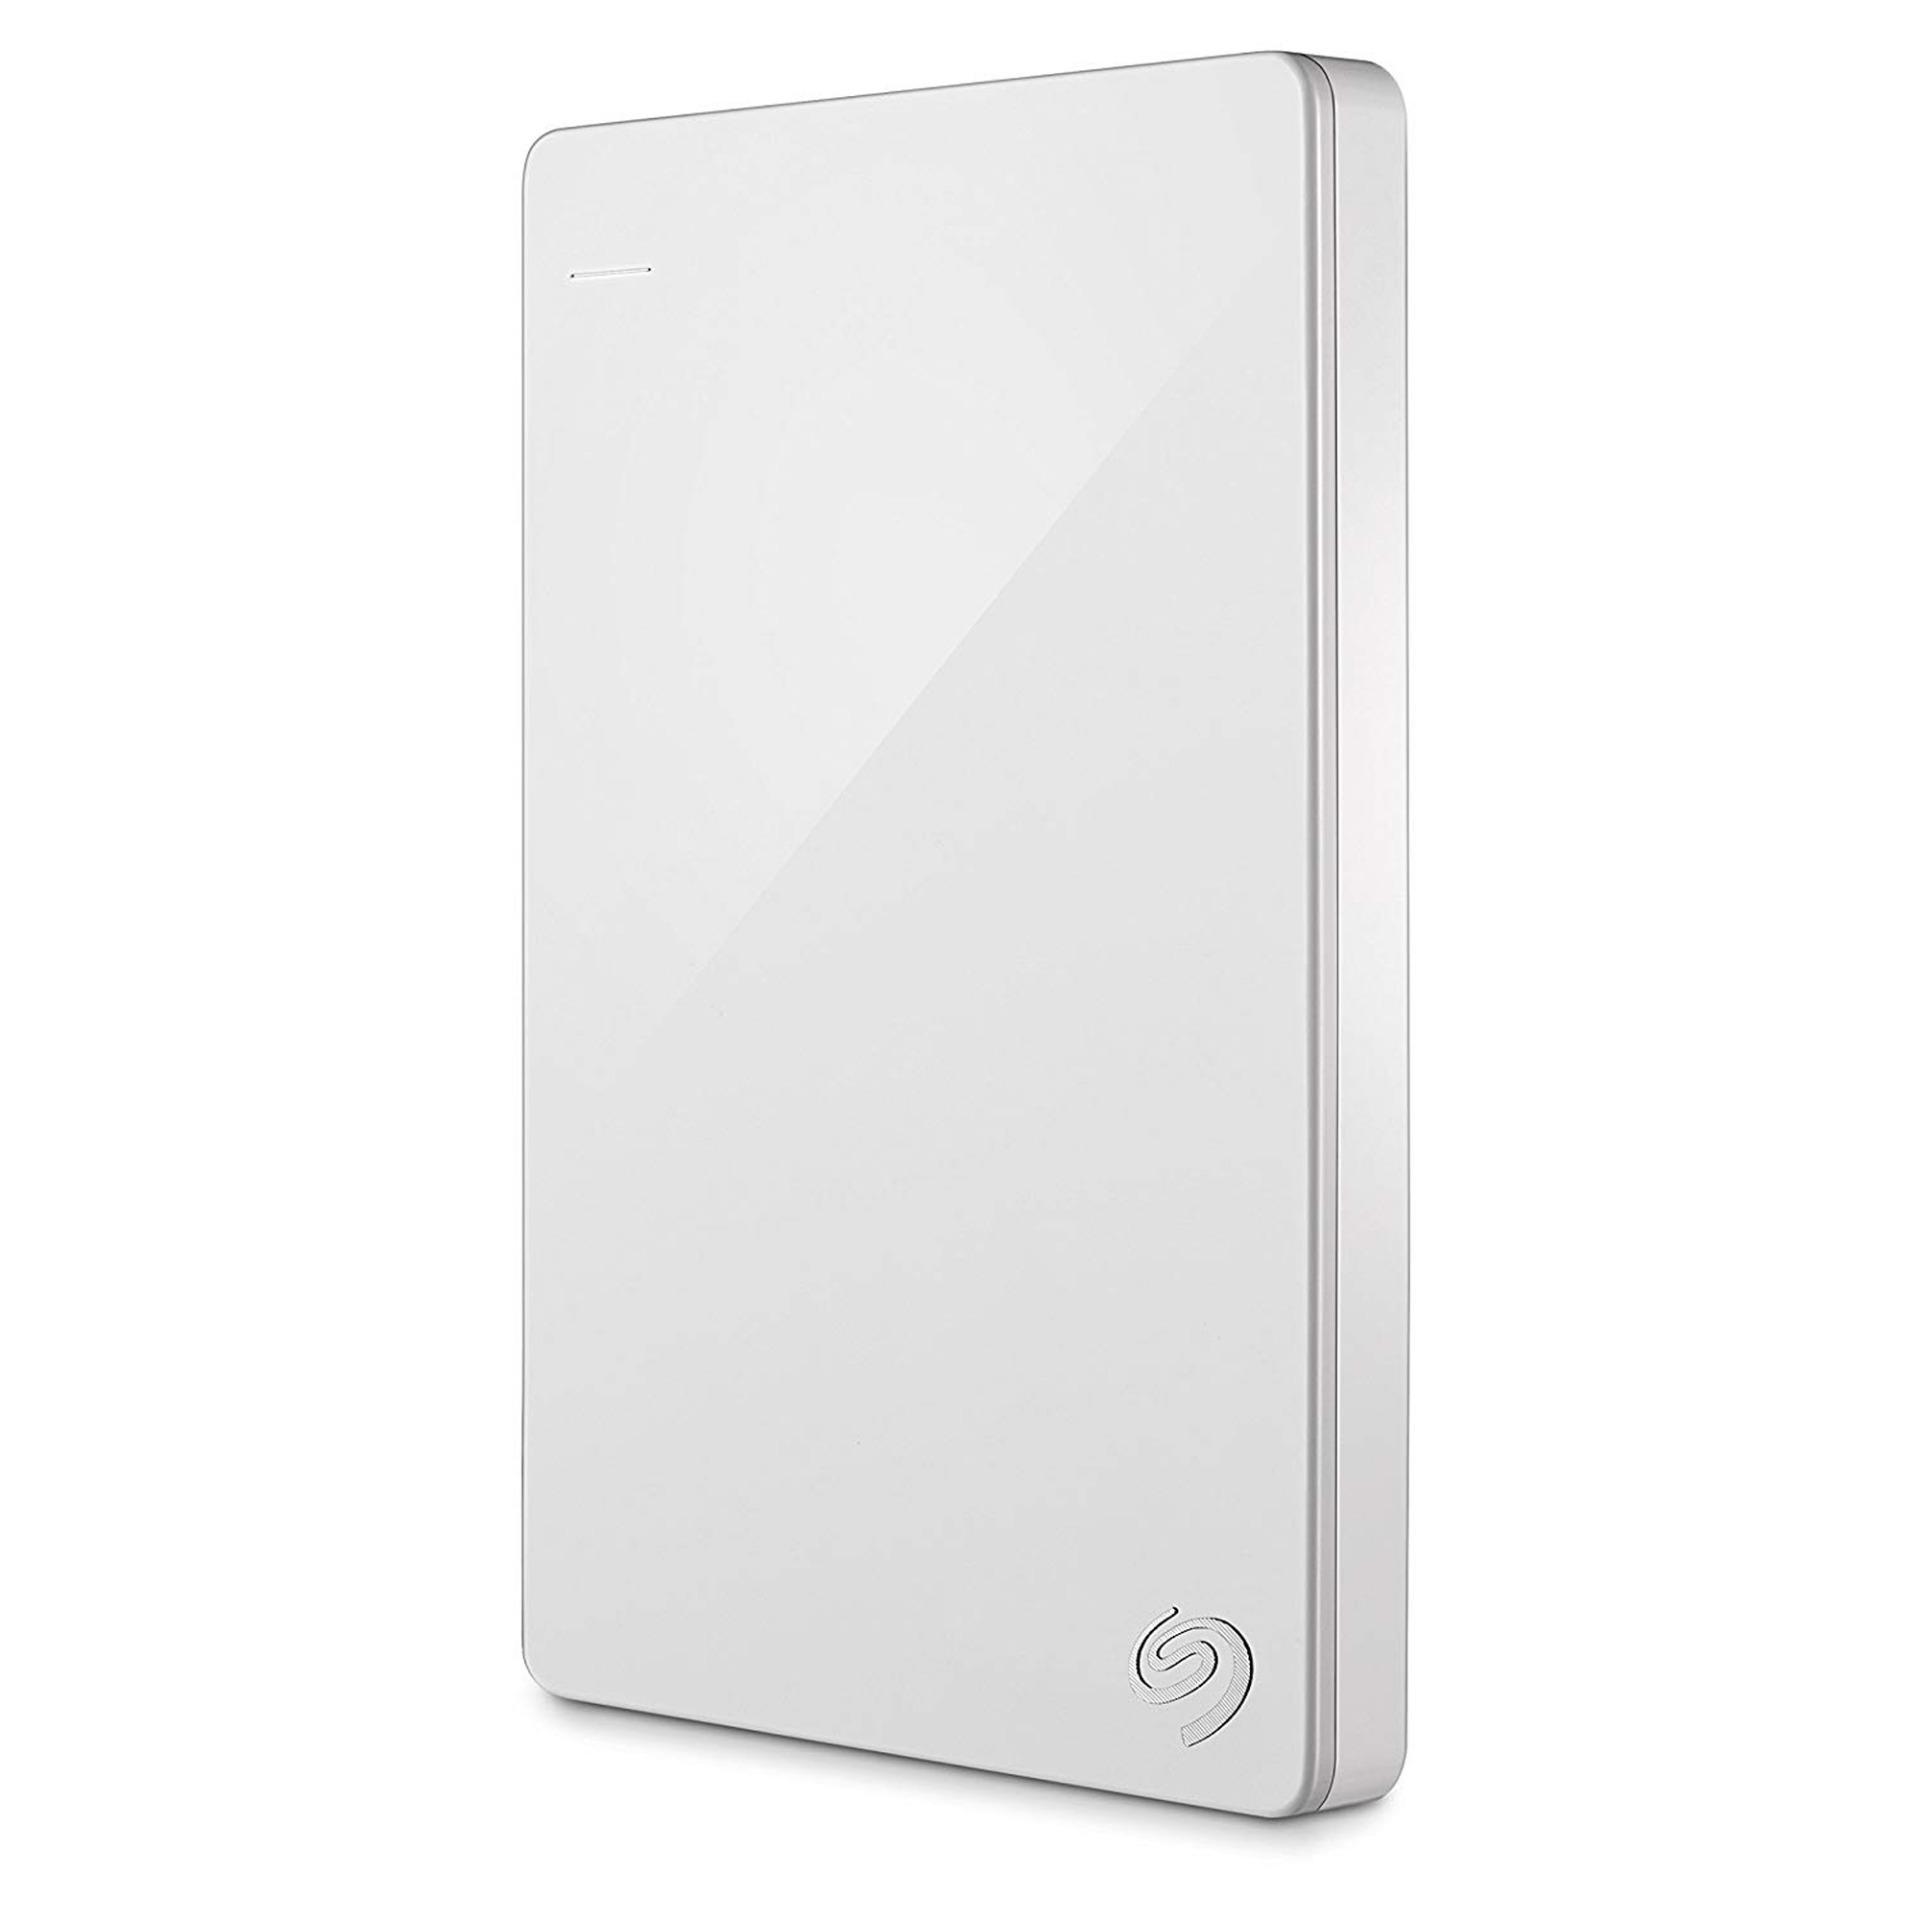 Buy Sell Cheapest Seagate 2tb Firecuda Best Quality Product Deals Backup Plus Slim Hdd Hd Hardisk Harddisk External Stdr1000 1tb Hard Disk Drive White